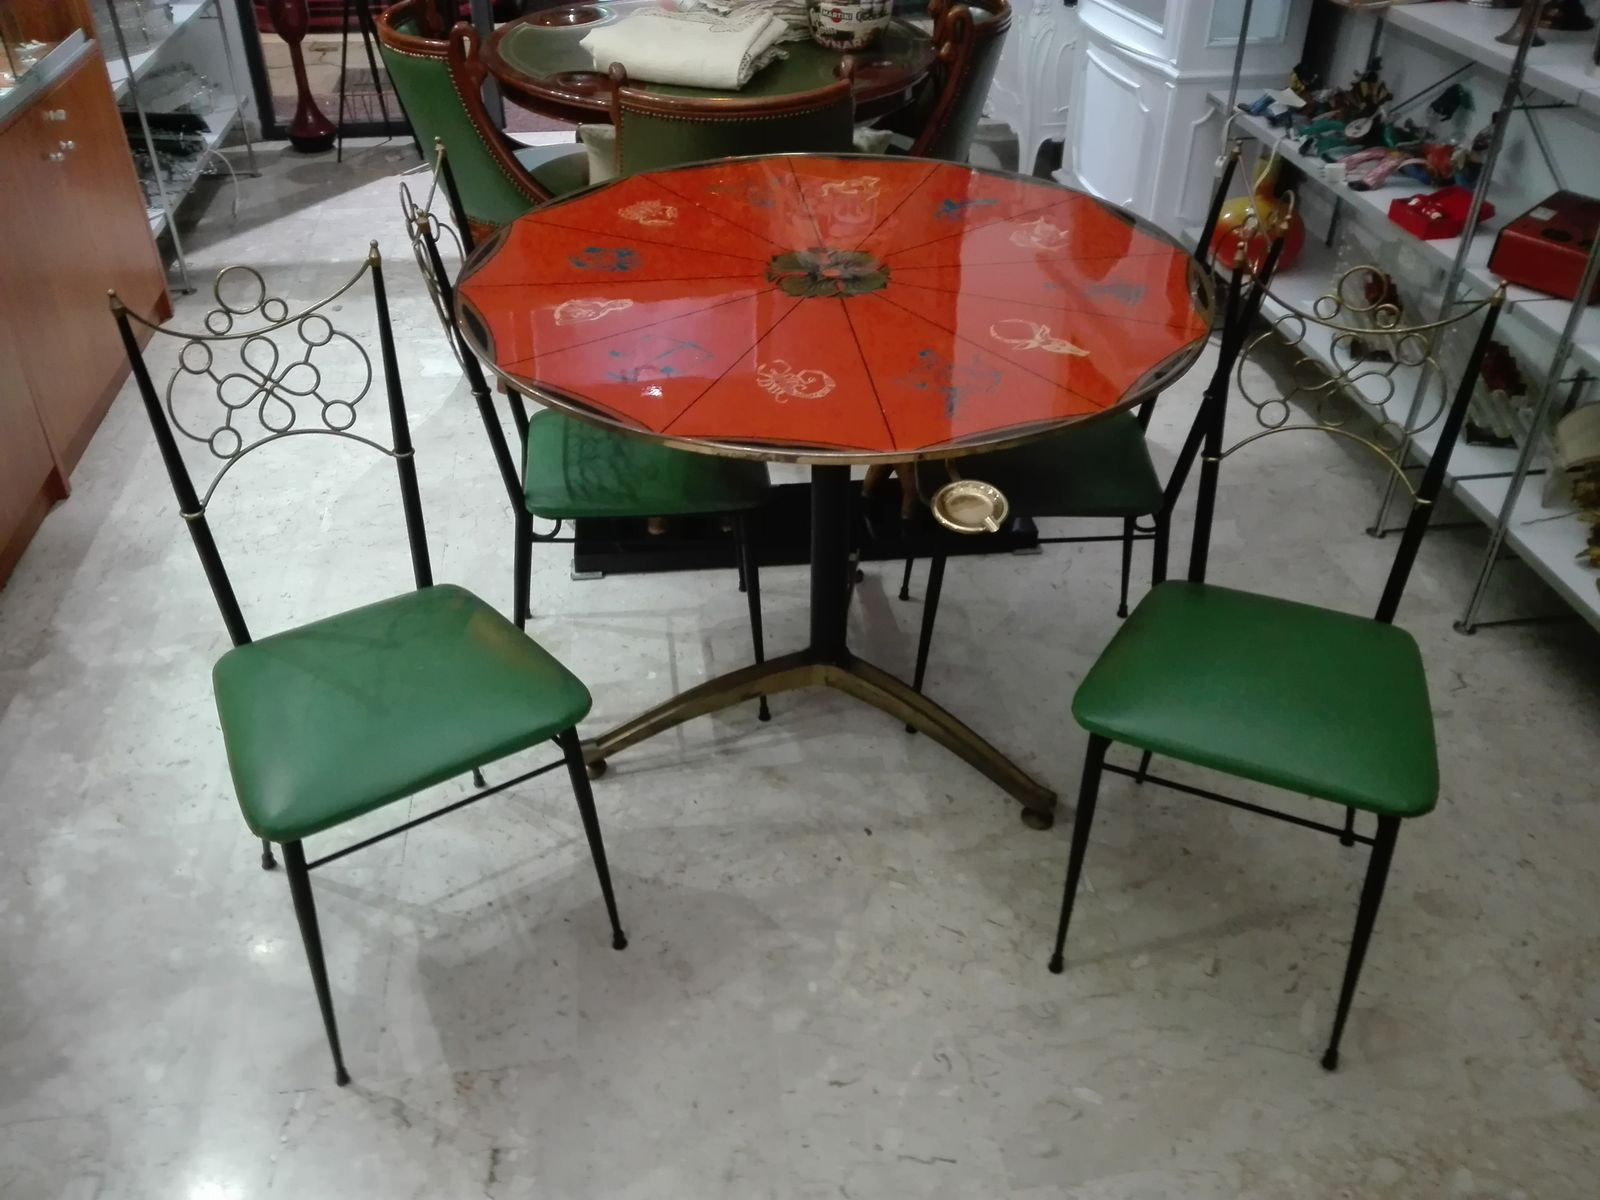 Zodiac Coffee Table & Chairs Set by Ignazio Gardella for sale at